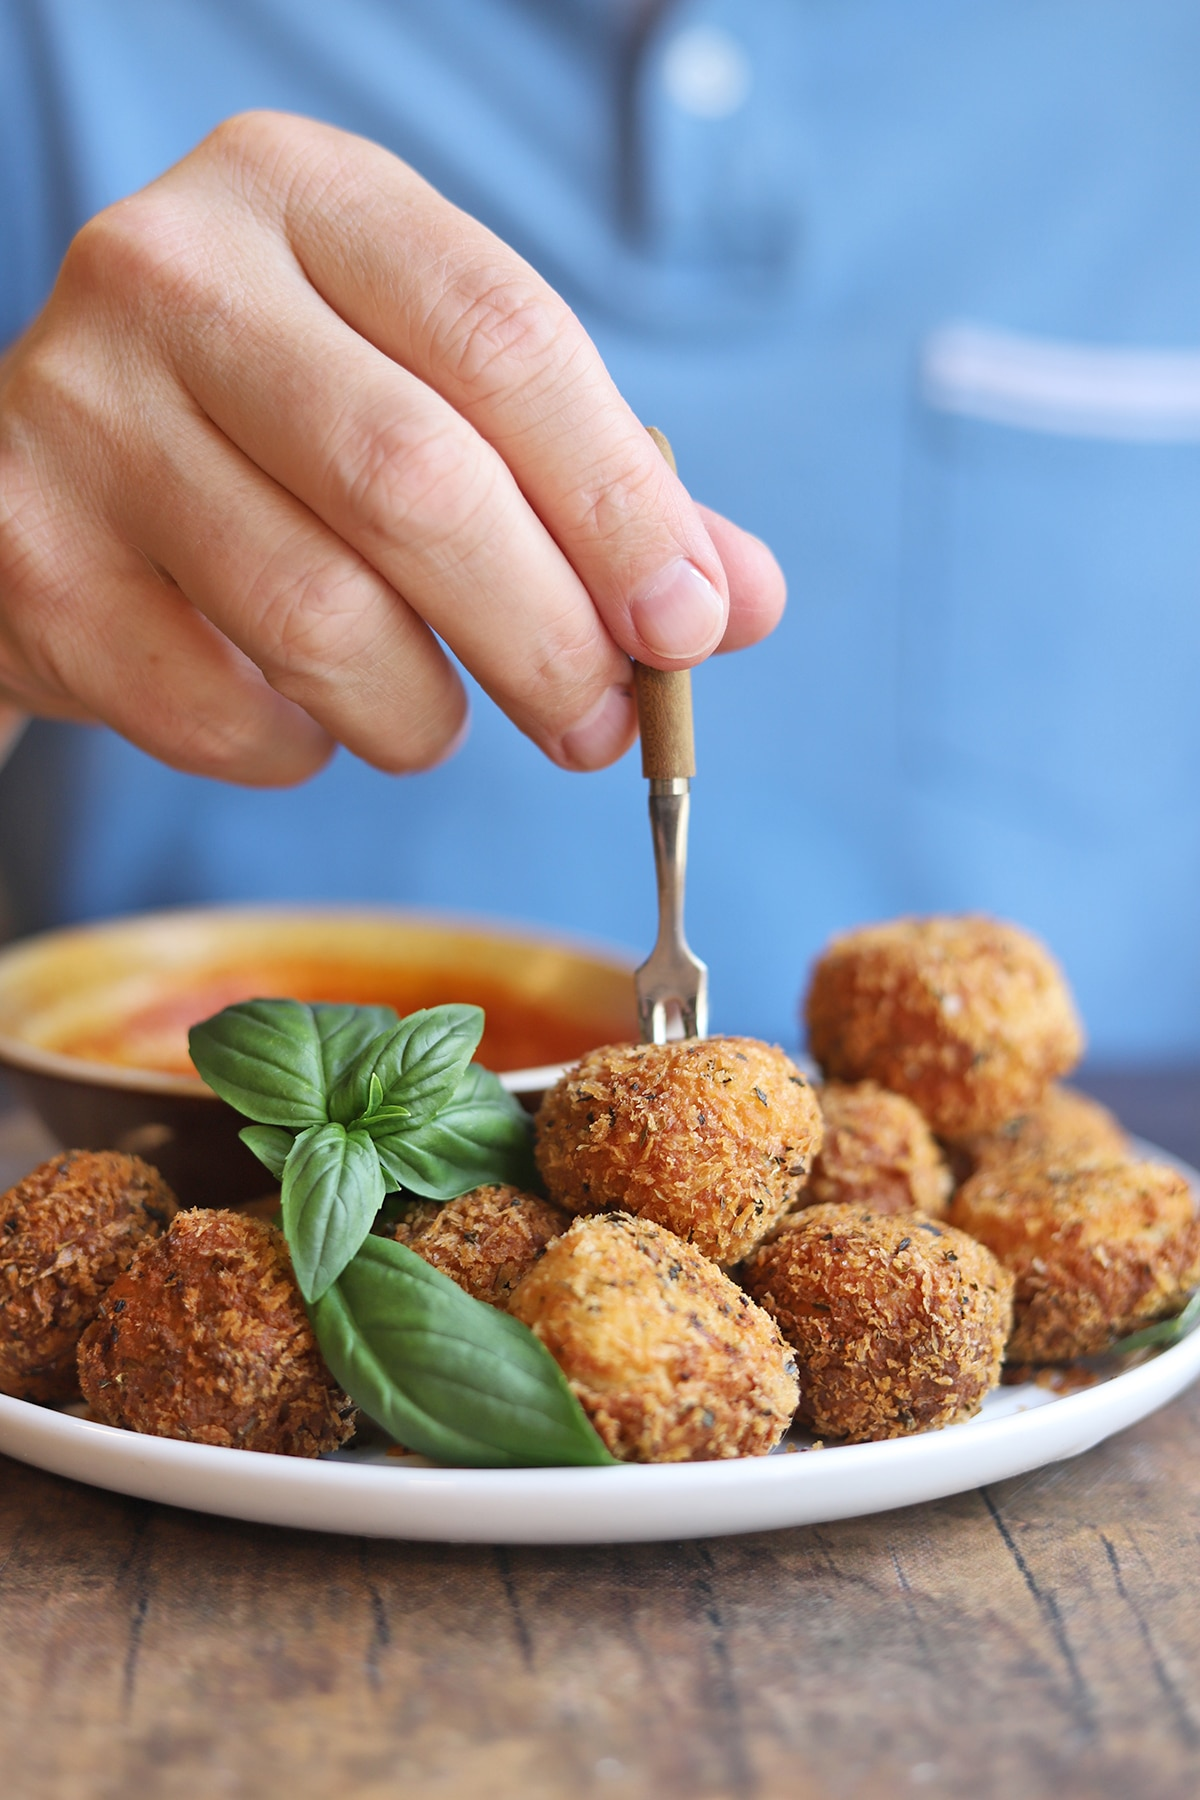 Hand spearing fried vegan cheese ball with tiny fork.